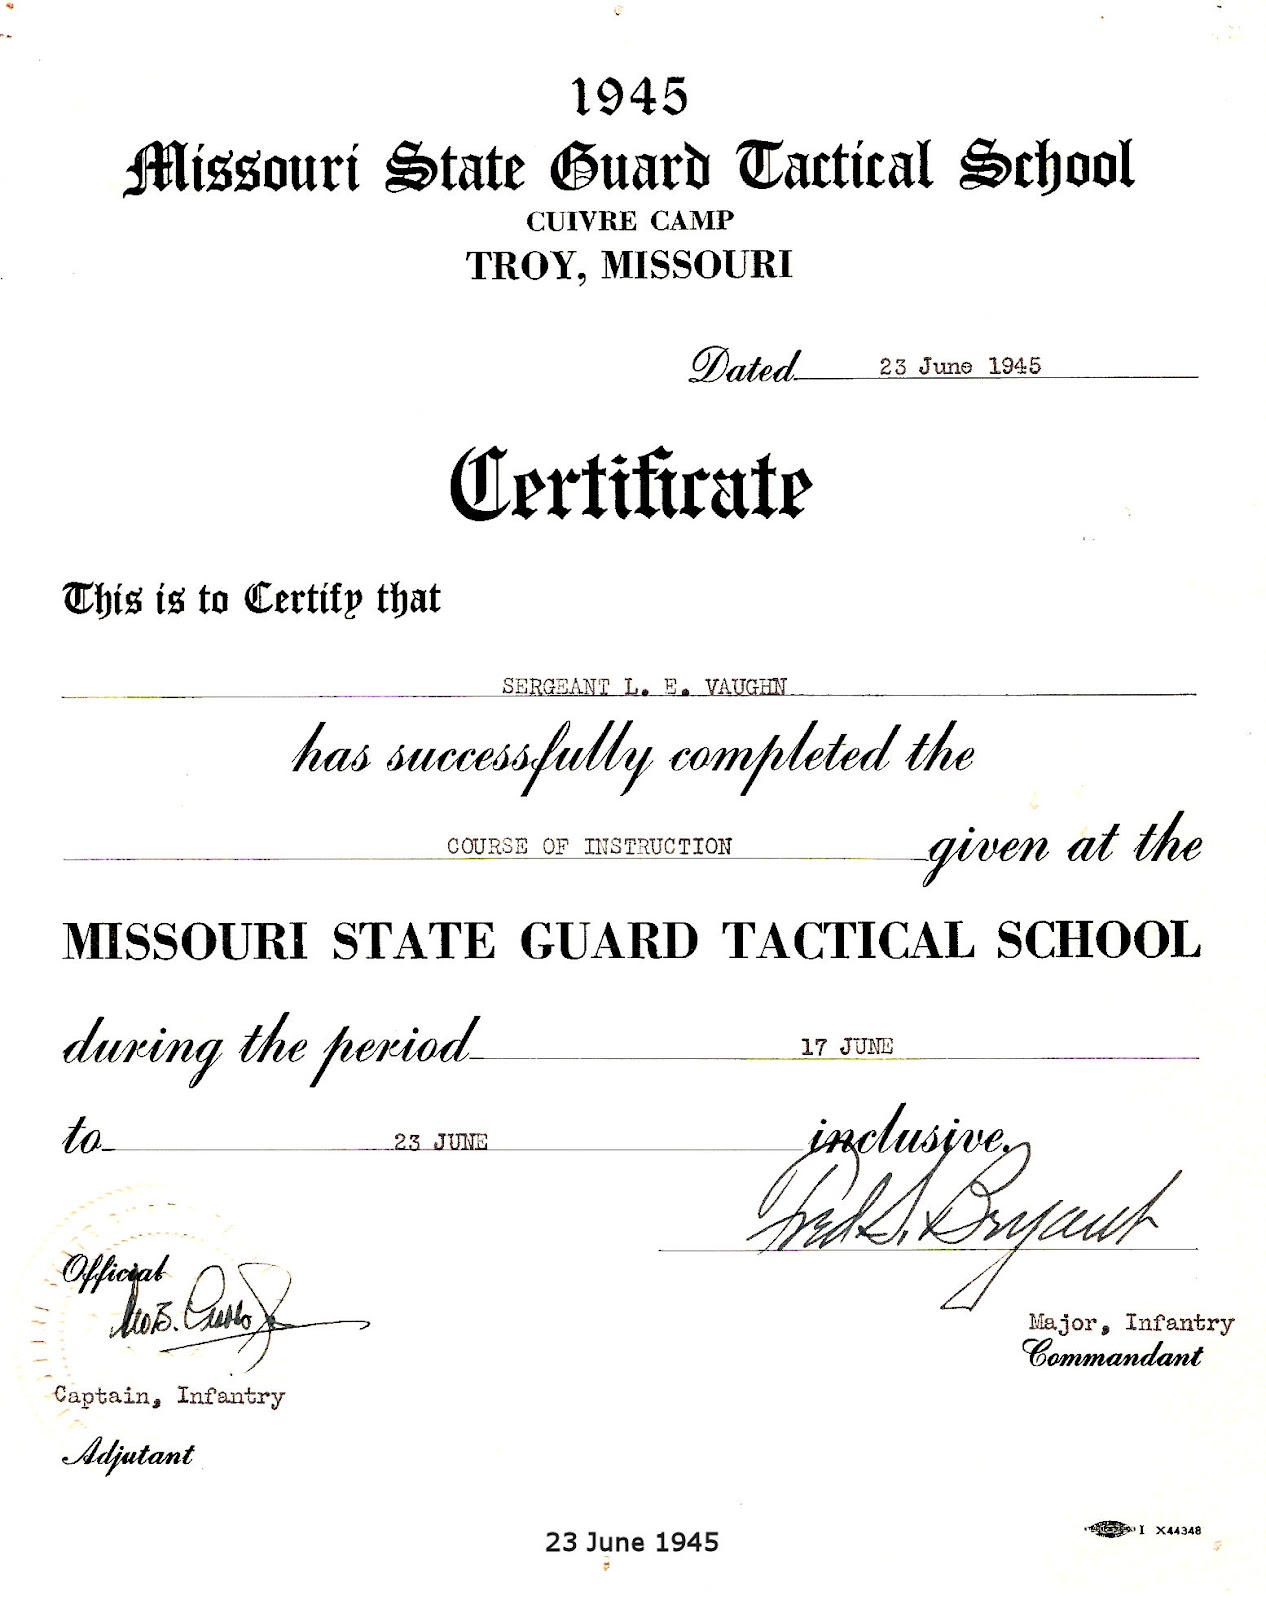 Mo State Guard Tactical School 1945.jpg